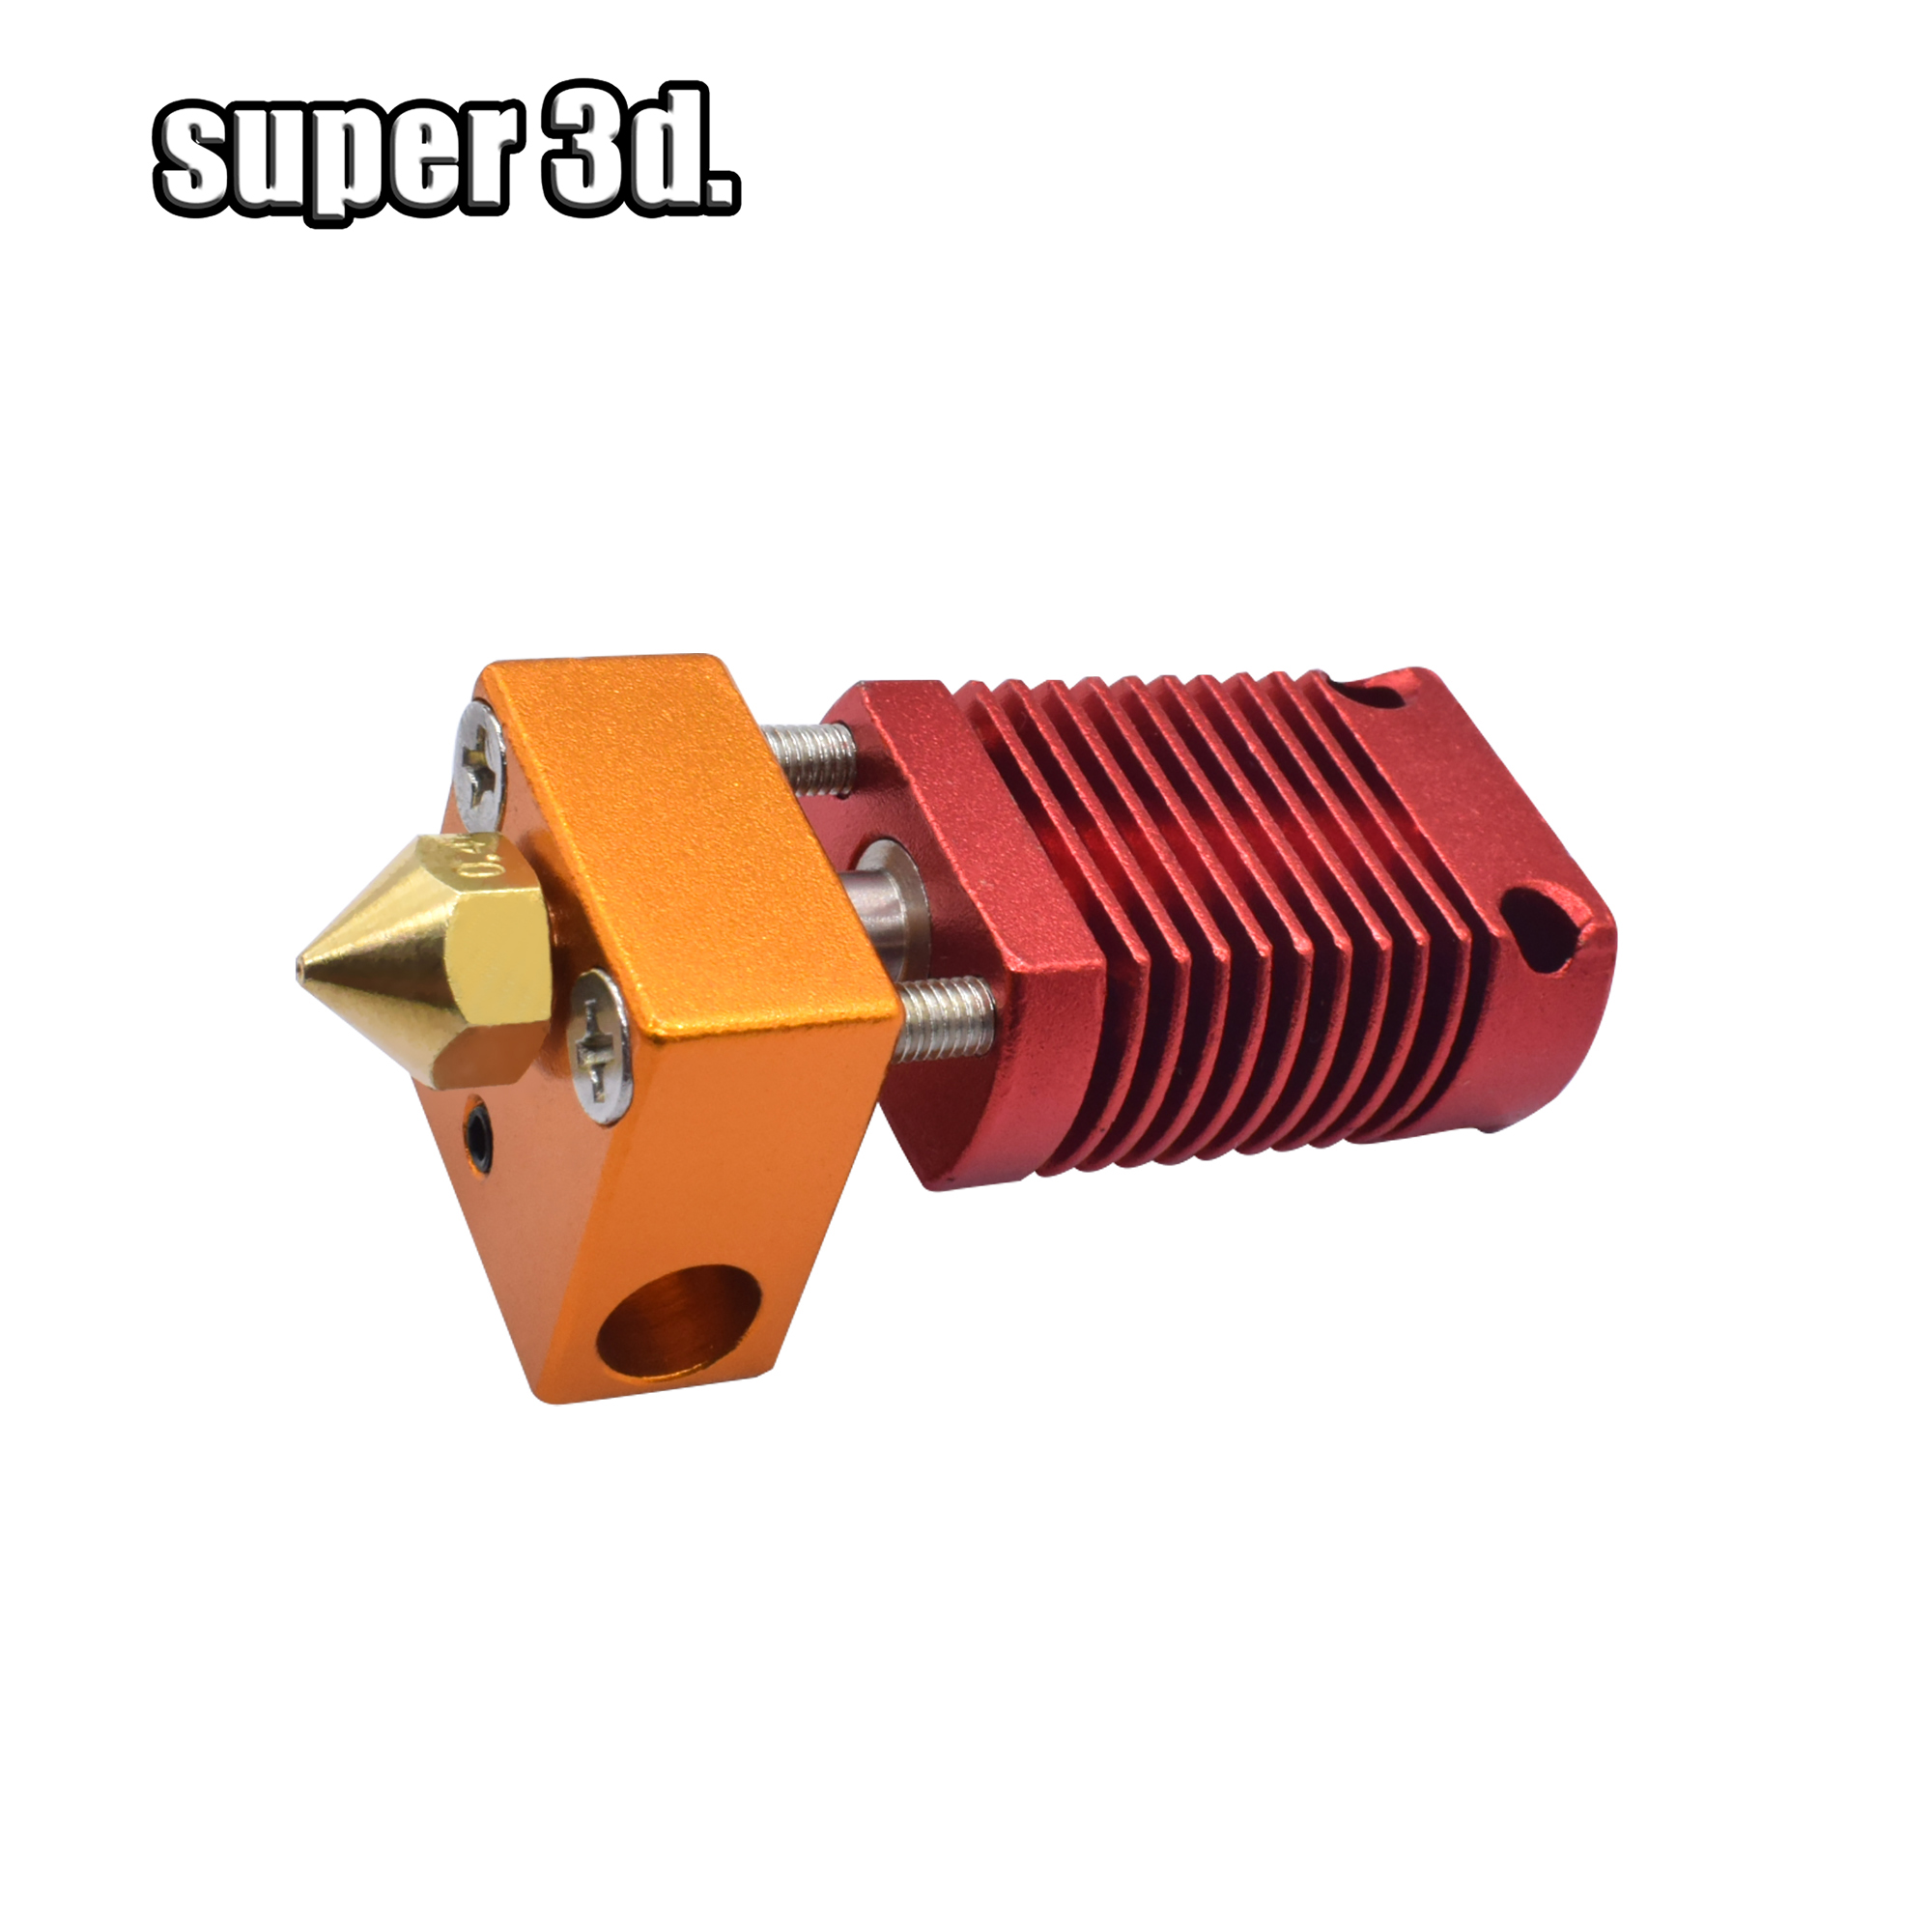 3D Full Metal J-head CR10 Hotend Extruder Hot End Kit for Creality Ender-3/5 Pro CR10/10s Bowden Extruder 5